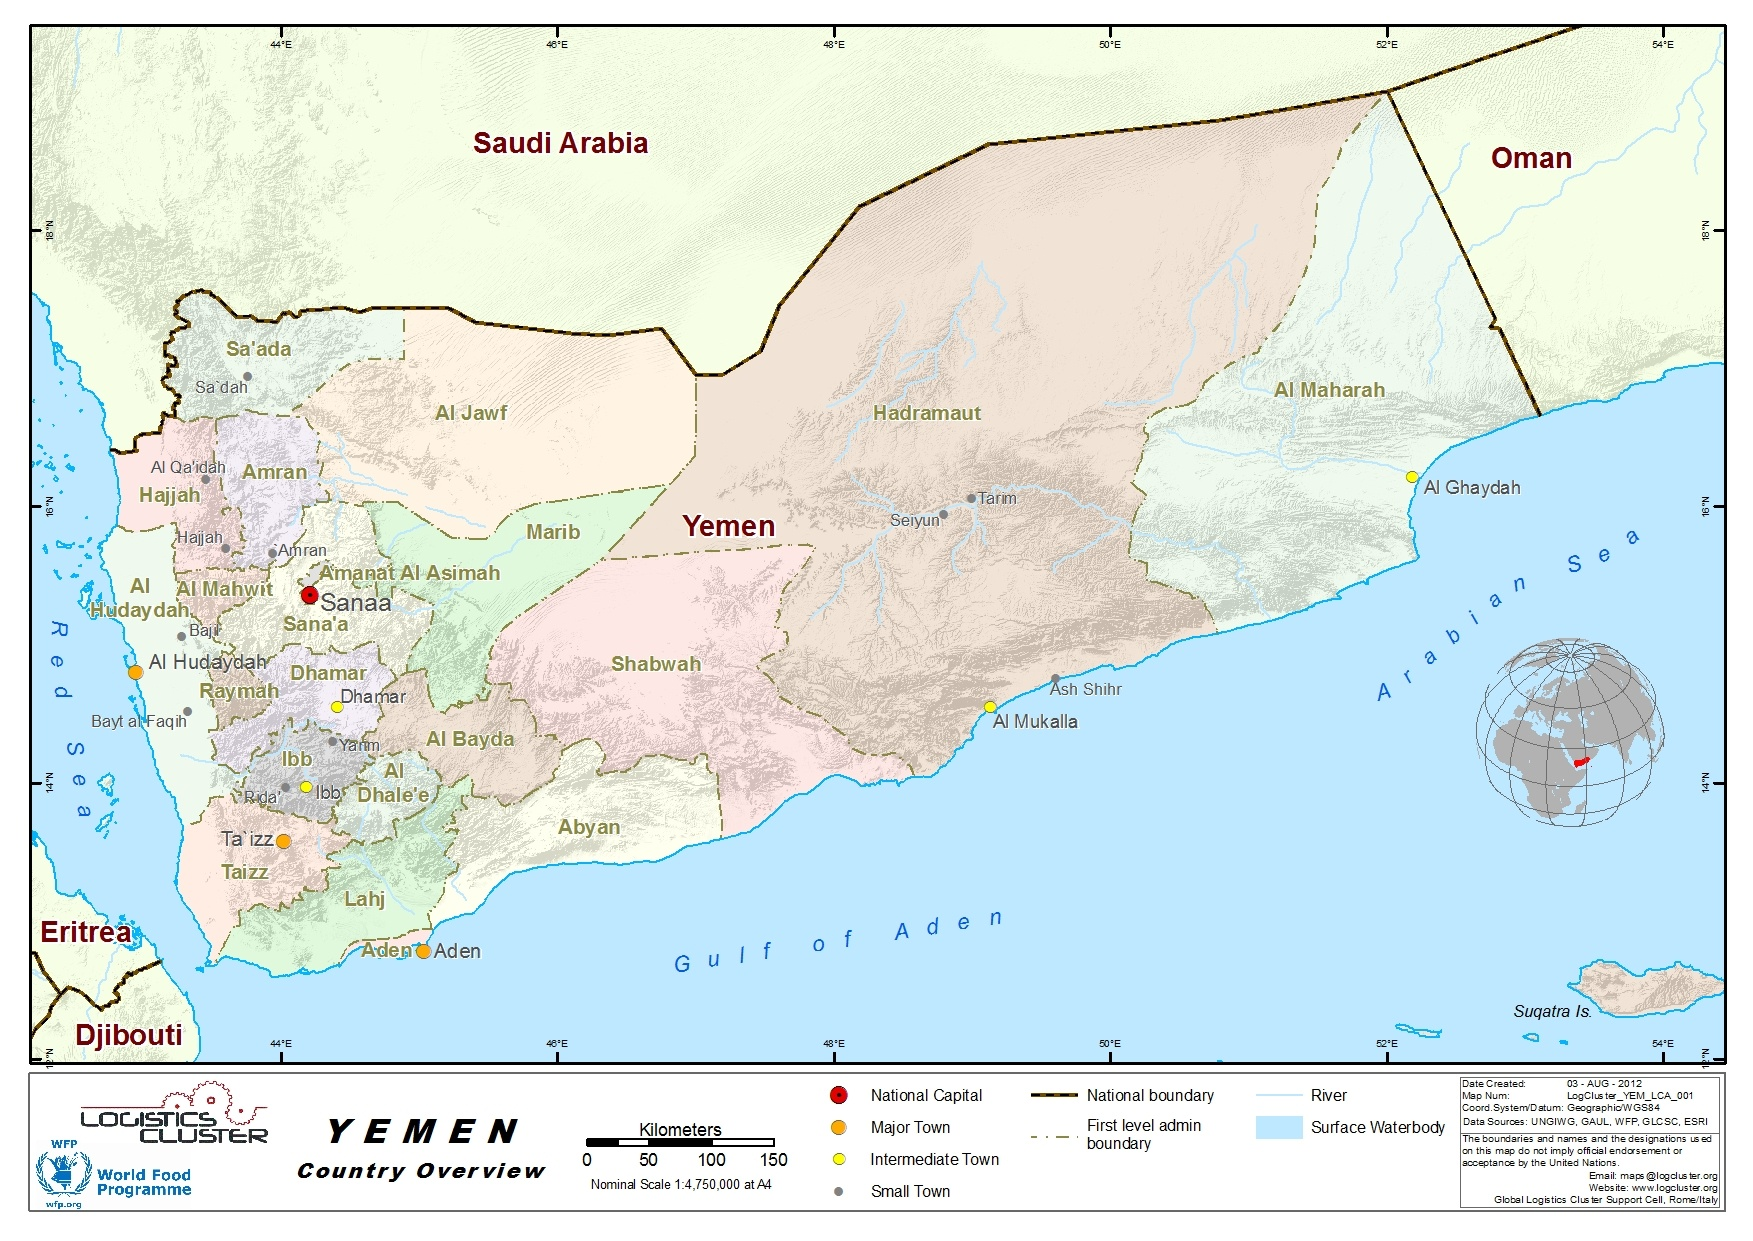 1 Yemen Country Profile - Logistics Capacity essment - Digital ... on greenland country map, soviet union country map, cyprus country map, kuala lumpur country map, vatican country map, burkina faso country map, u.s. country map, taliban country map, kyrgyzstan country map, republic of georgia country map, botswana country map, uzbekistan country map, mount everest country map, worldwide country map, british virgin islands country map, mesopotamia country map, dominica country map, persian gulf country map, turkmenistan country map, babylonia country map,